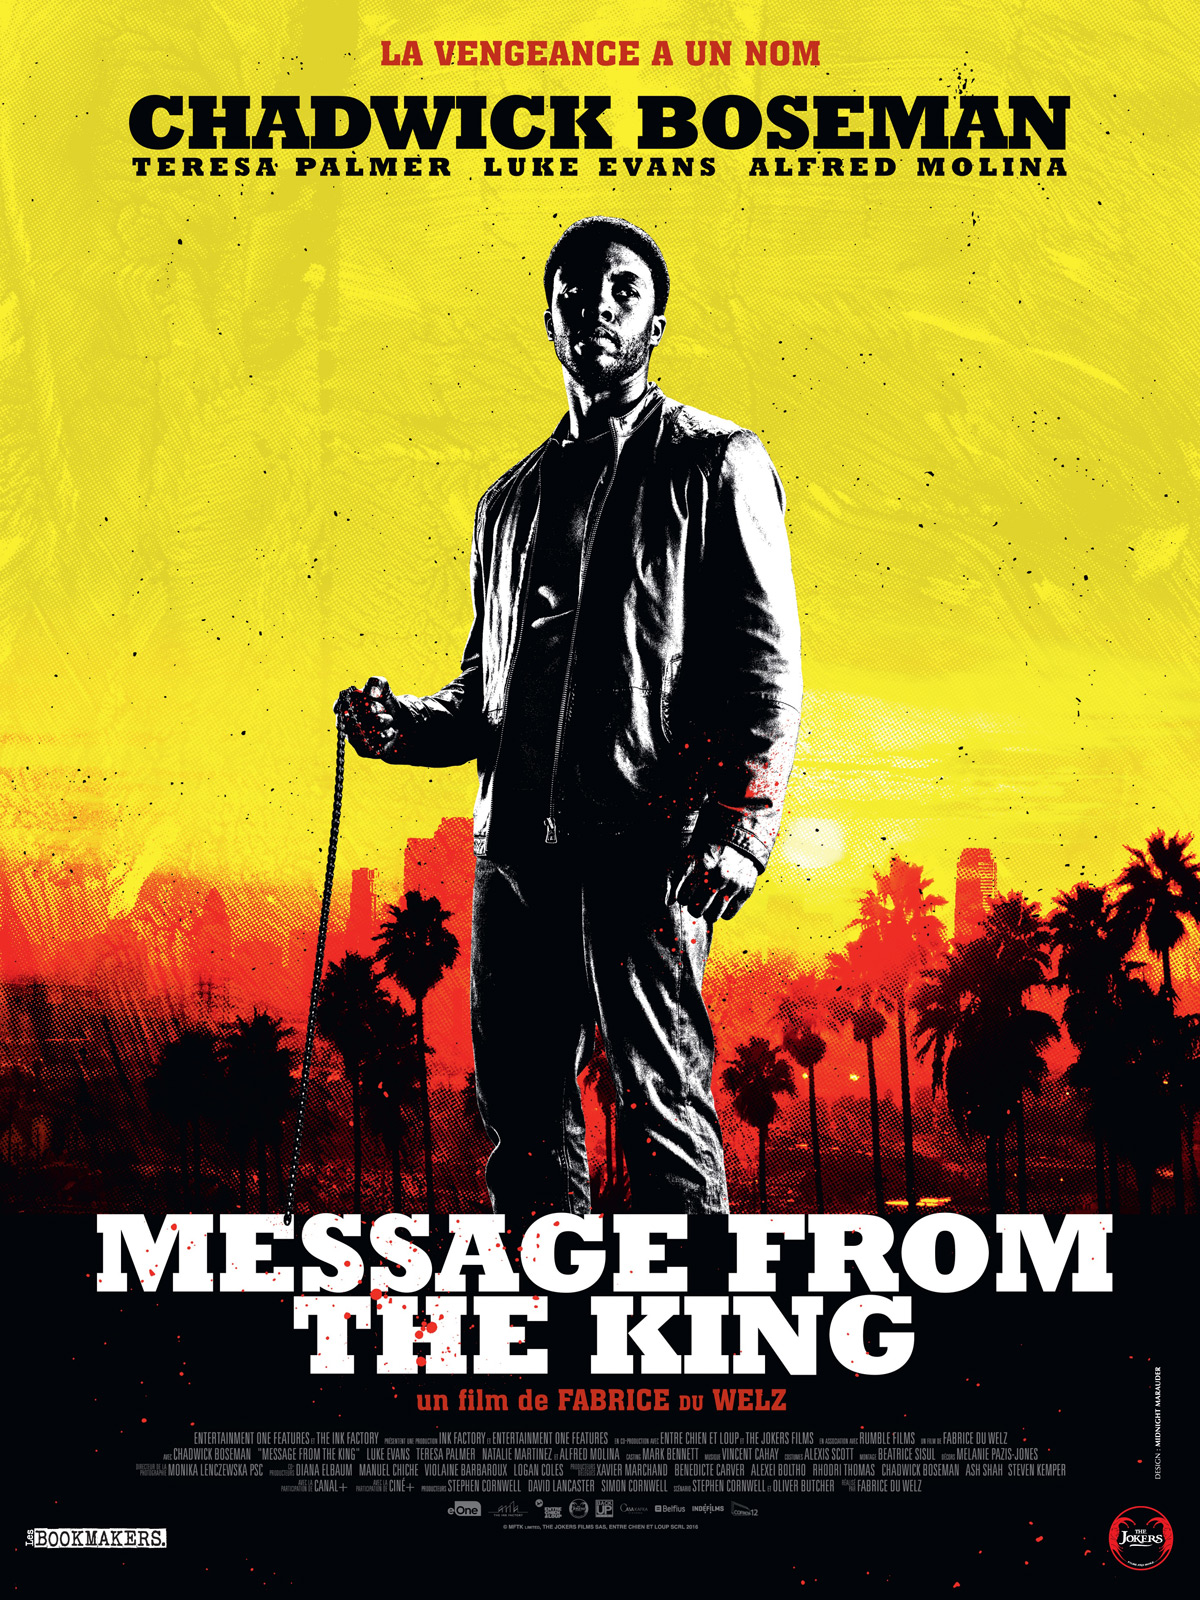 Message-from-the-King-movie-poster.jpg?ssl=1